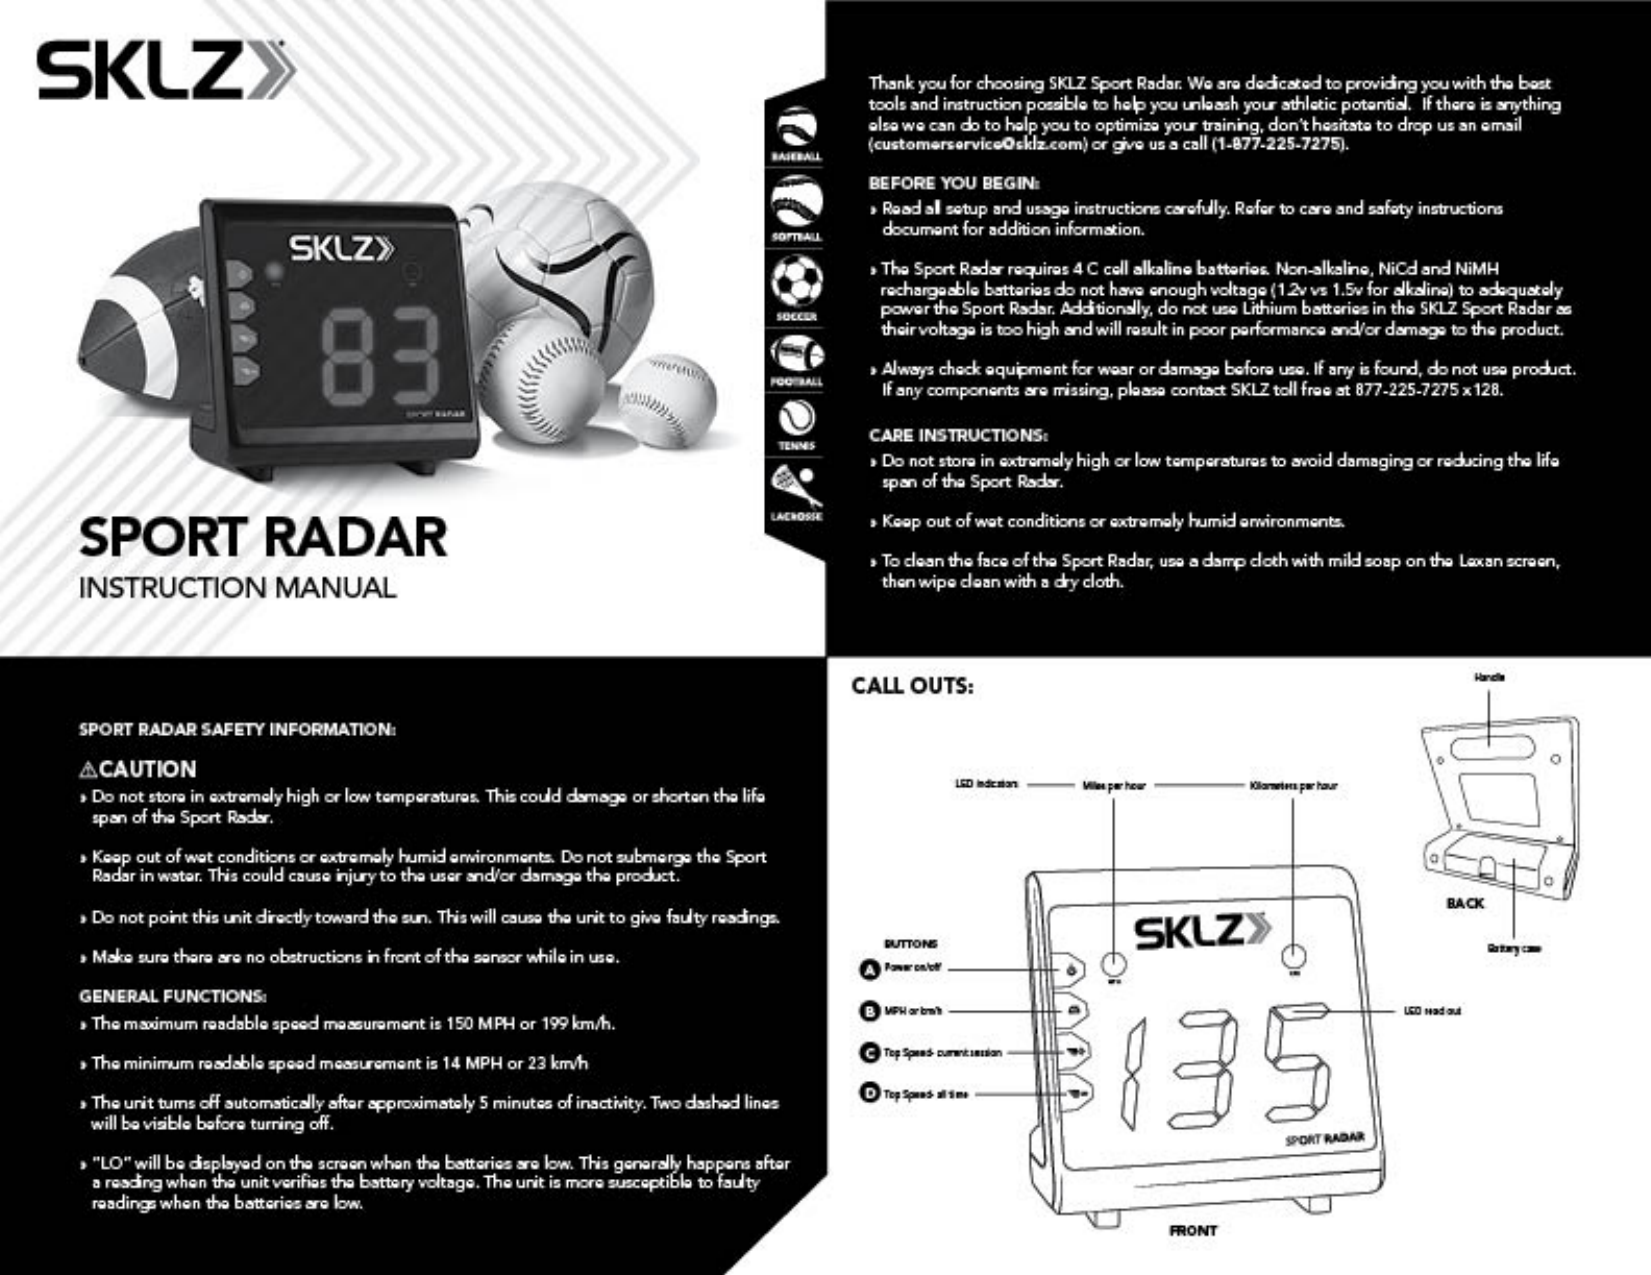 sklz sport radar instructions